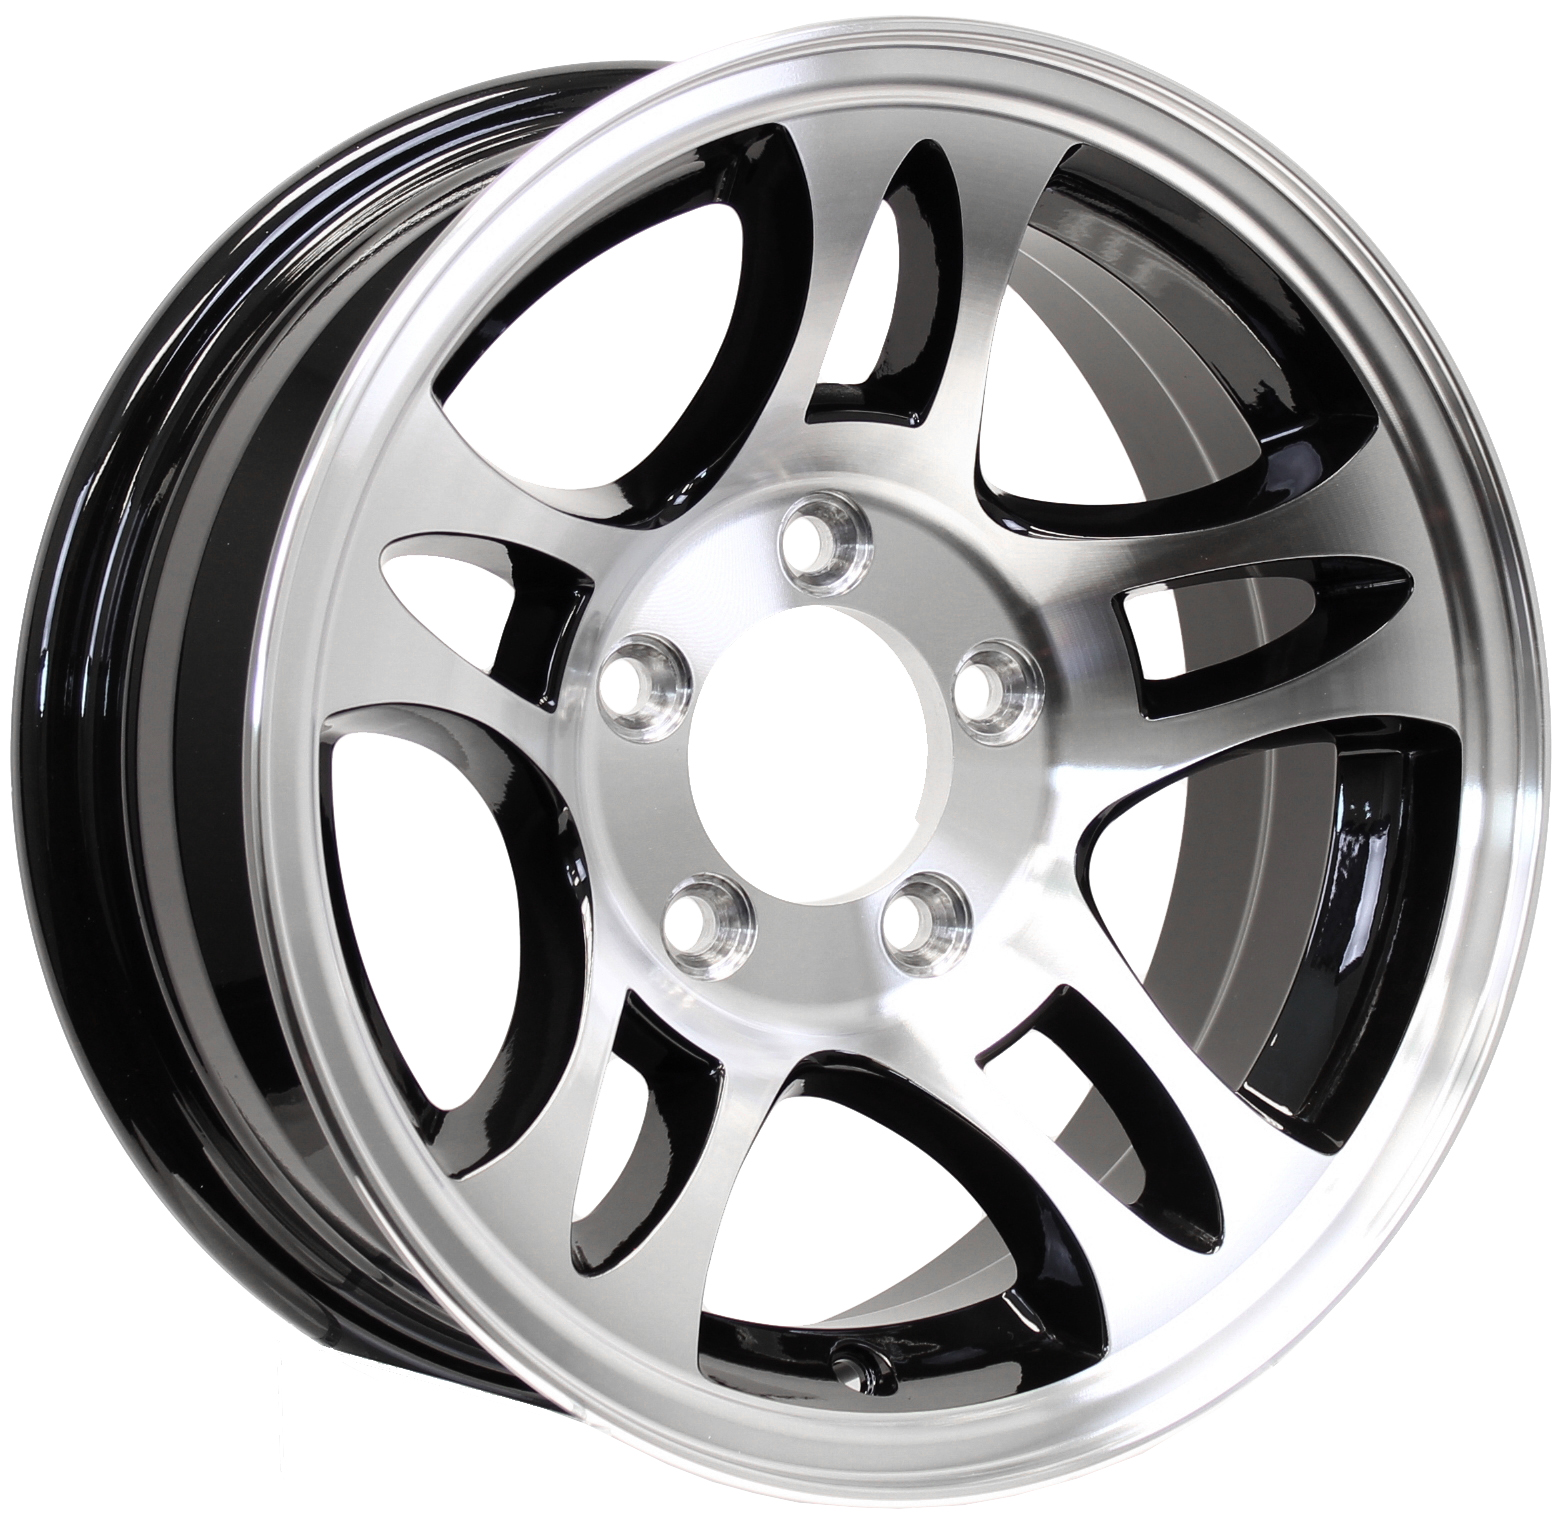 T03 15x5 5-Lug Black Machine Aluminum Trailer Wheel Image